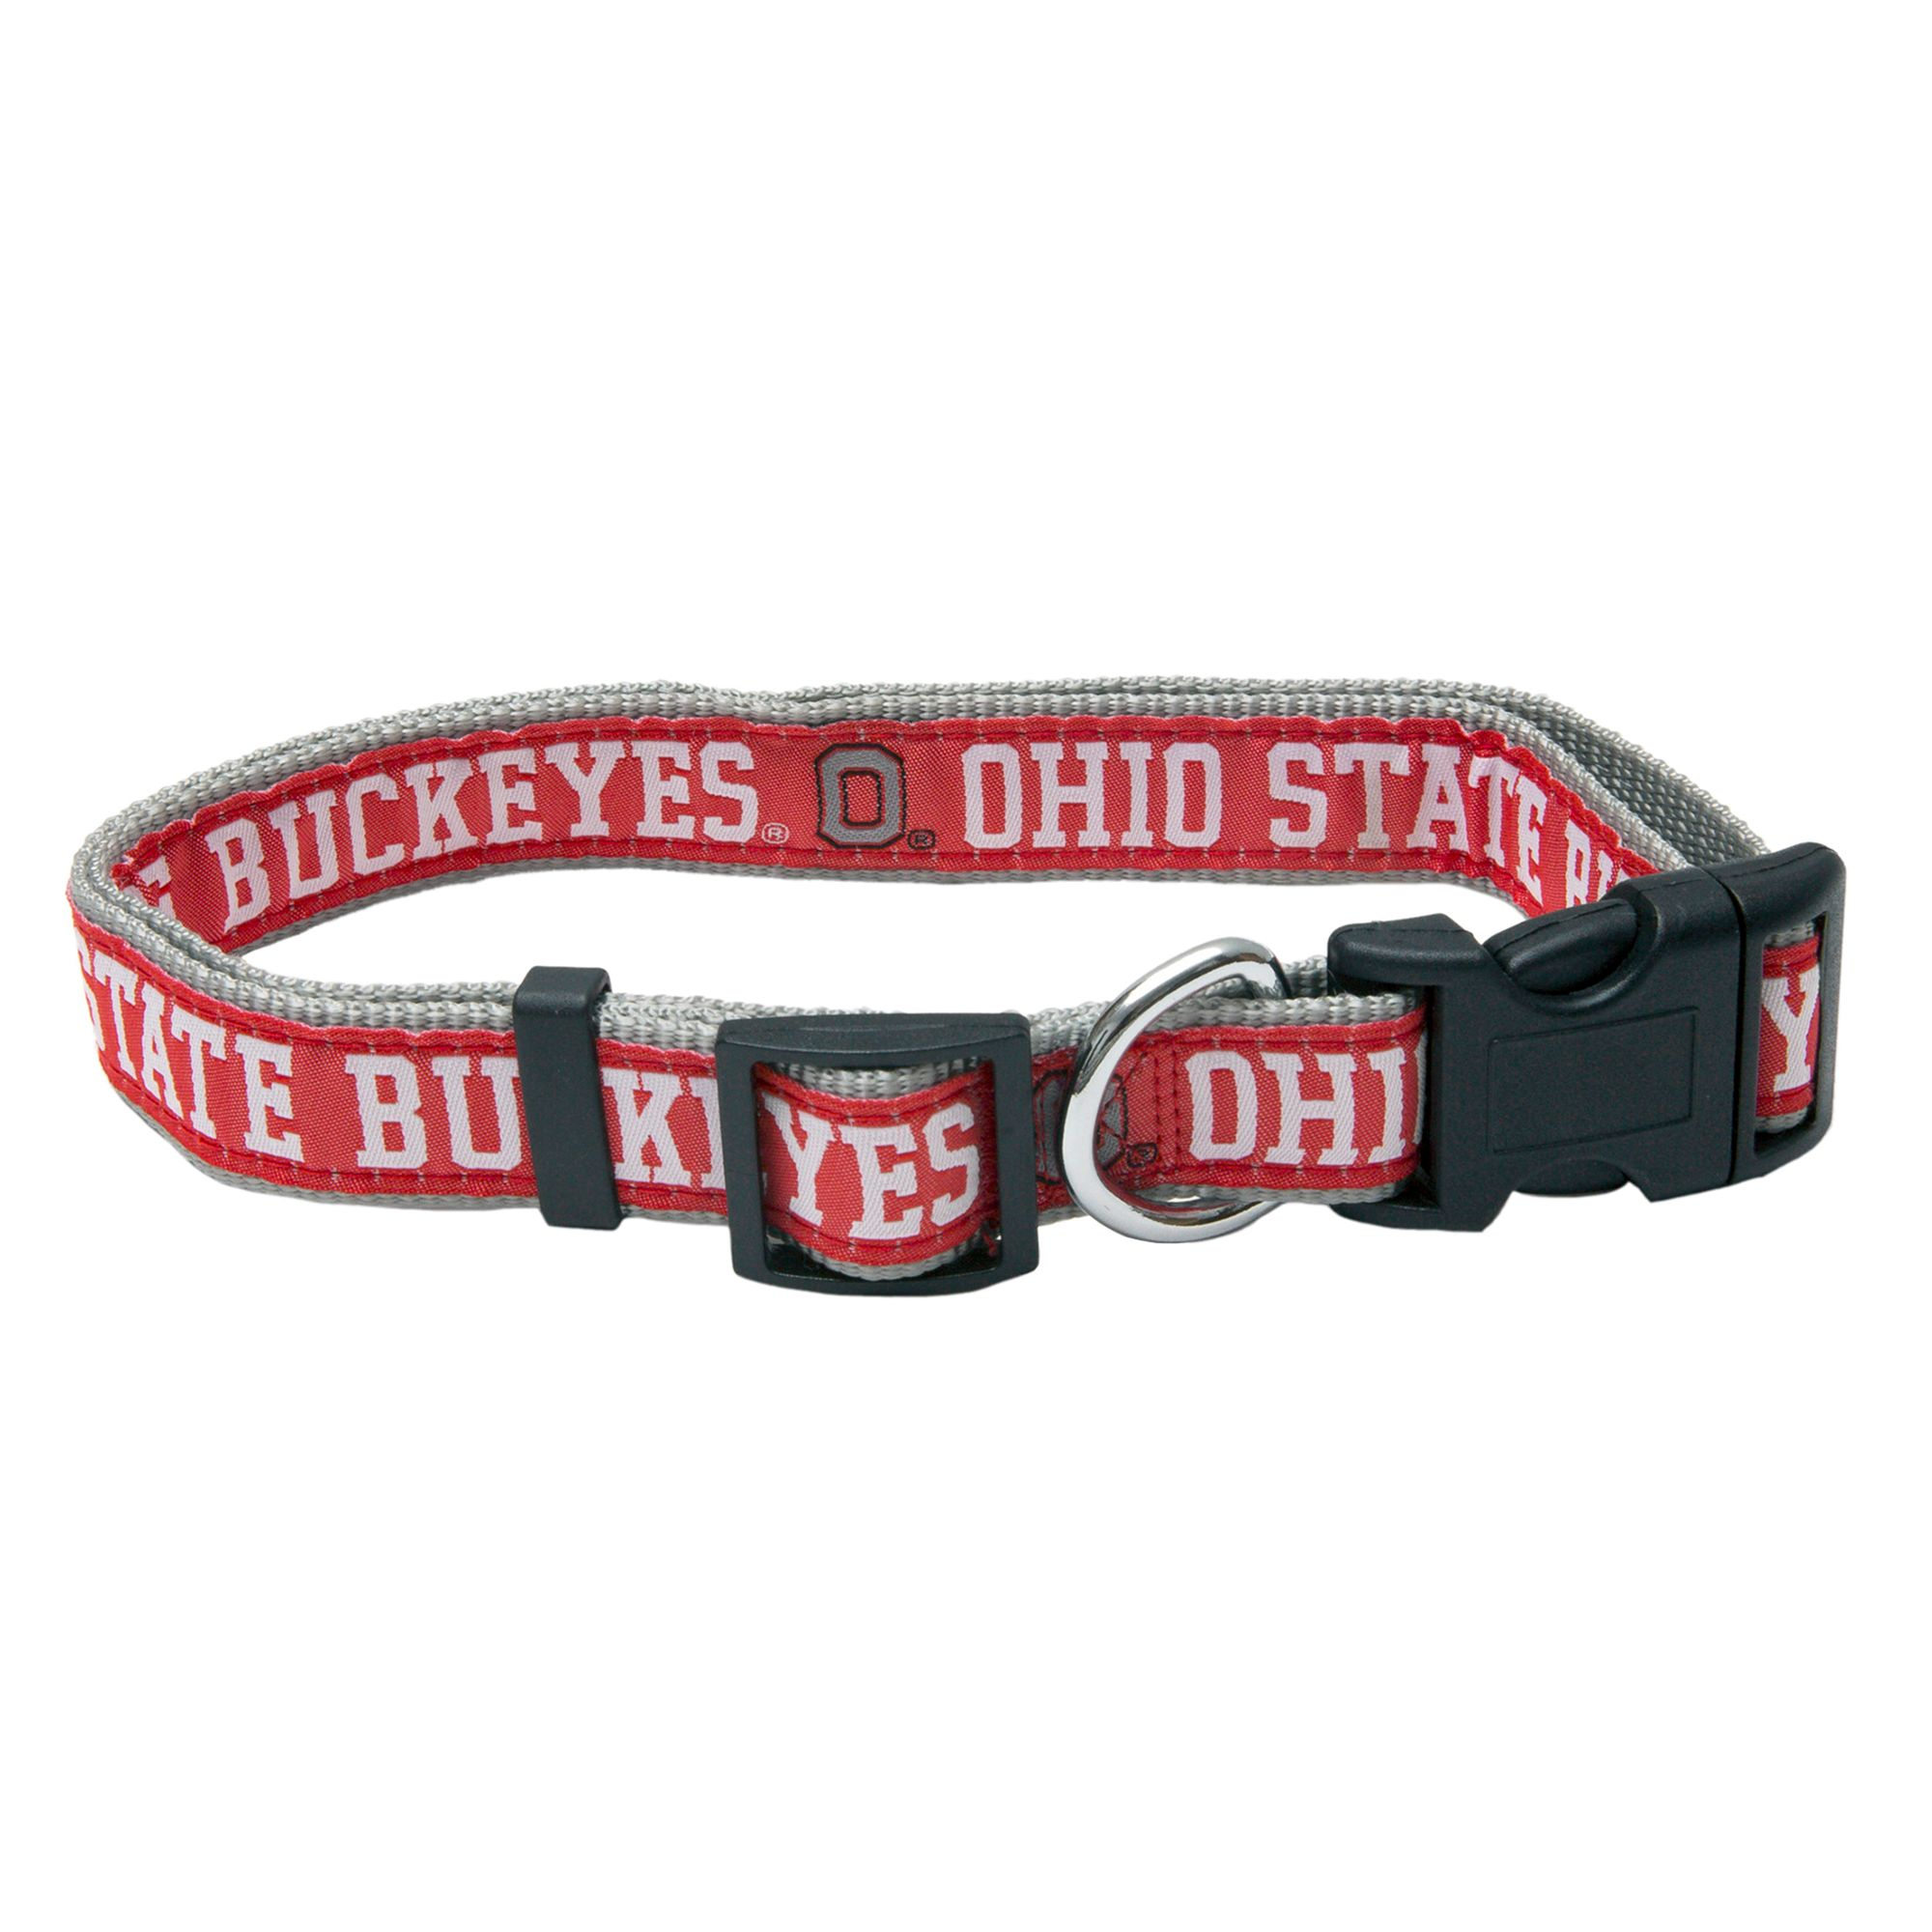 made in USA OHIO STATE BUCKEYES DOG COLLARS /& LEASHES